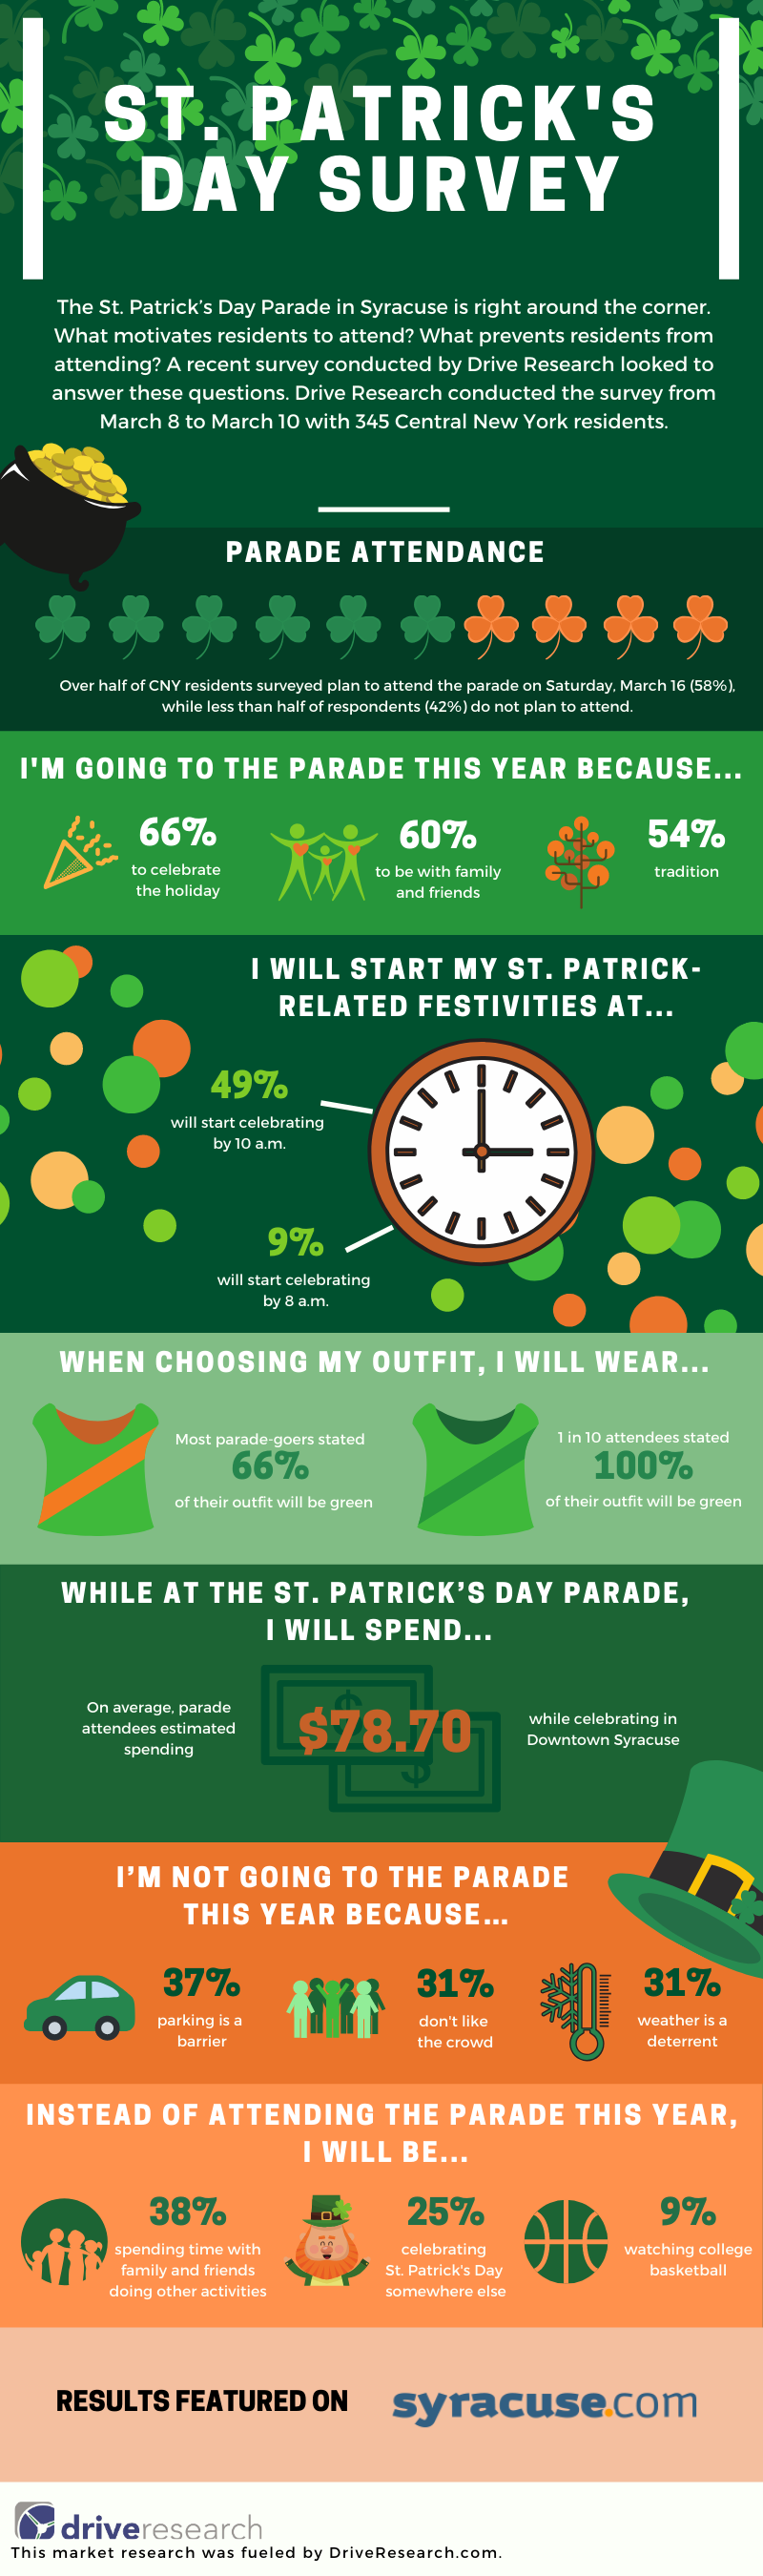 Top 10 Findings from the Central New York St. Patrick's Day Parade Survey Inforgraphic